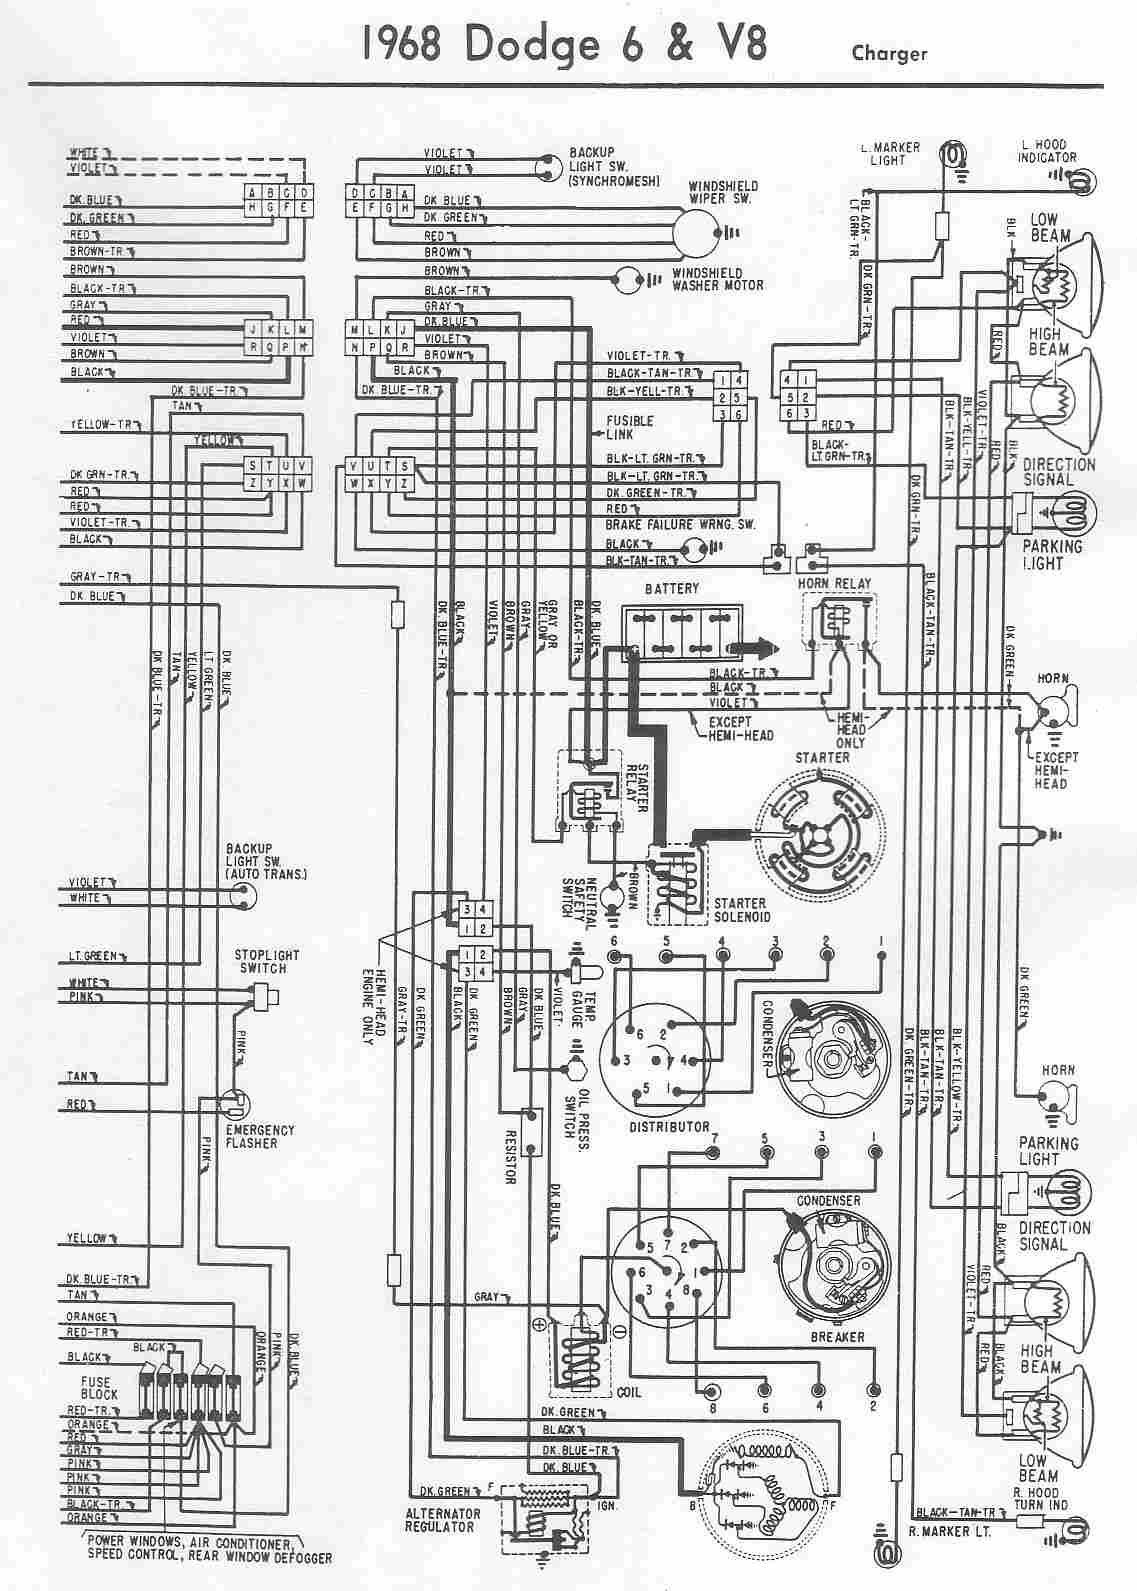 2008 dodge magnum radio wiring diagram factory polaris 500 fuse box atv locations